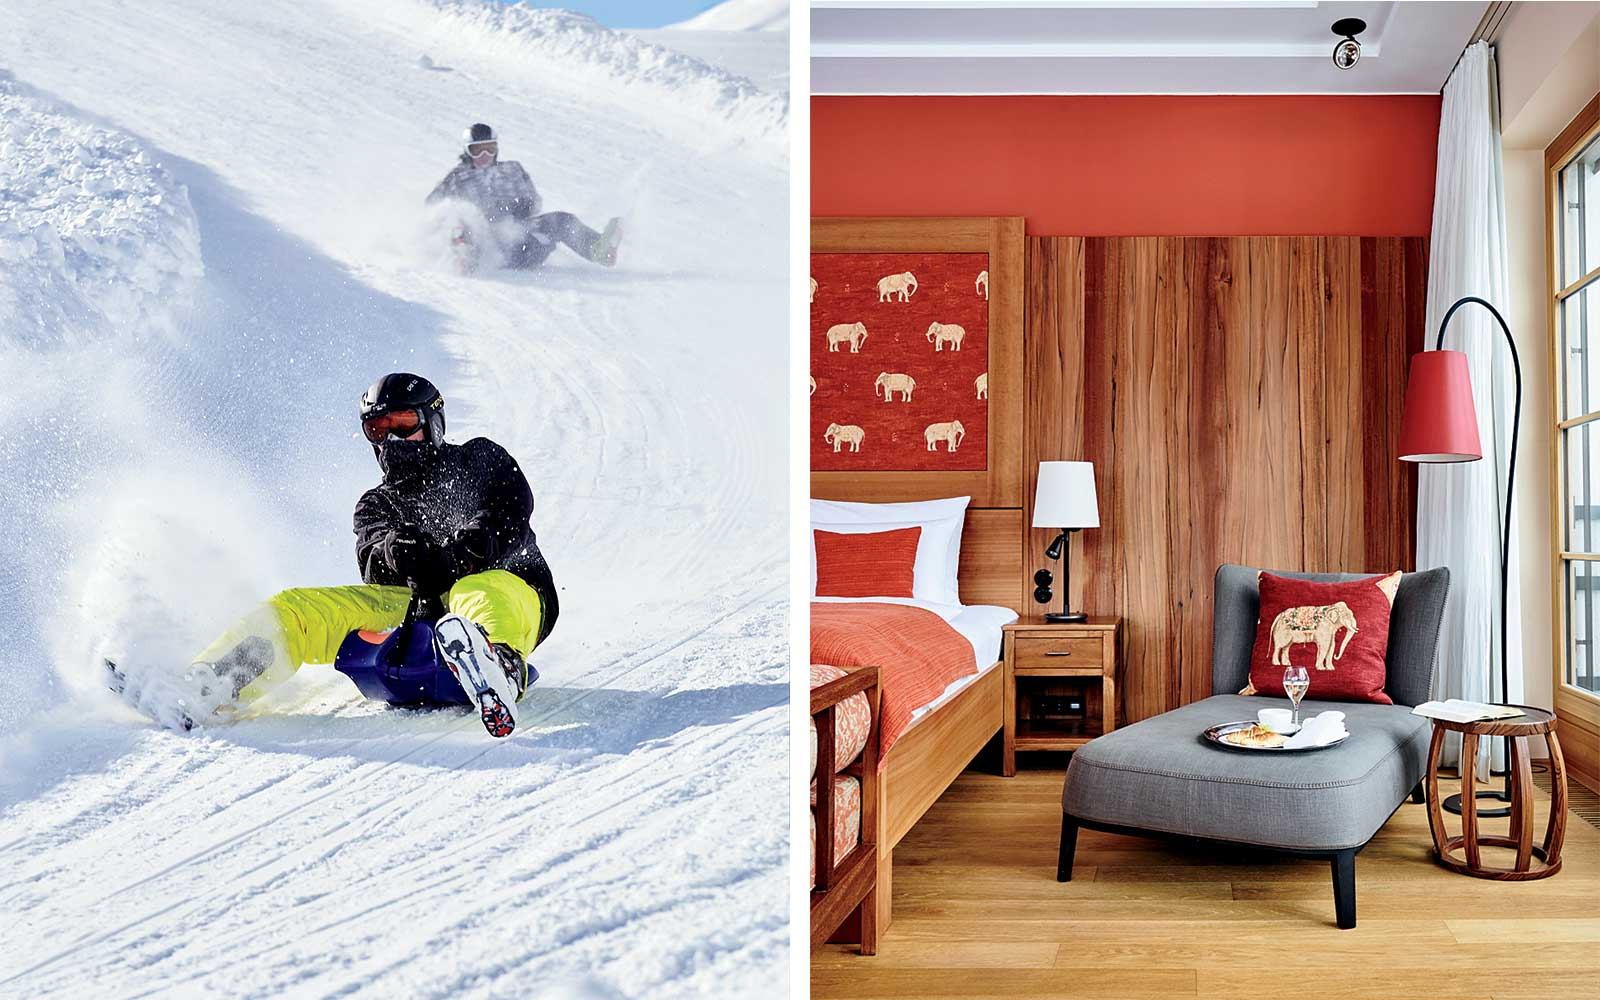 Sledding in Bavaria and a room at the Schloss Elmau hotel